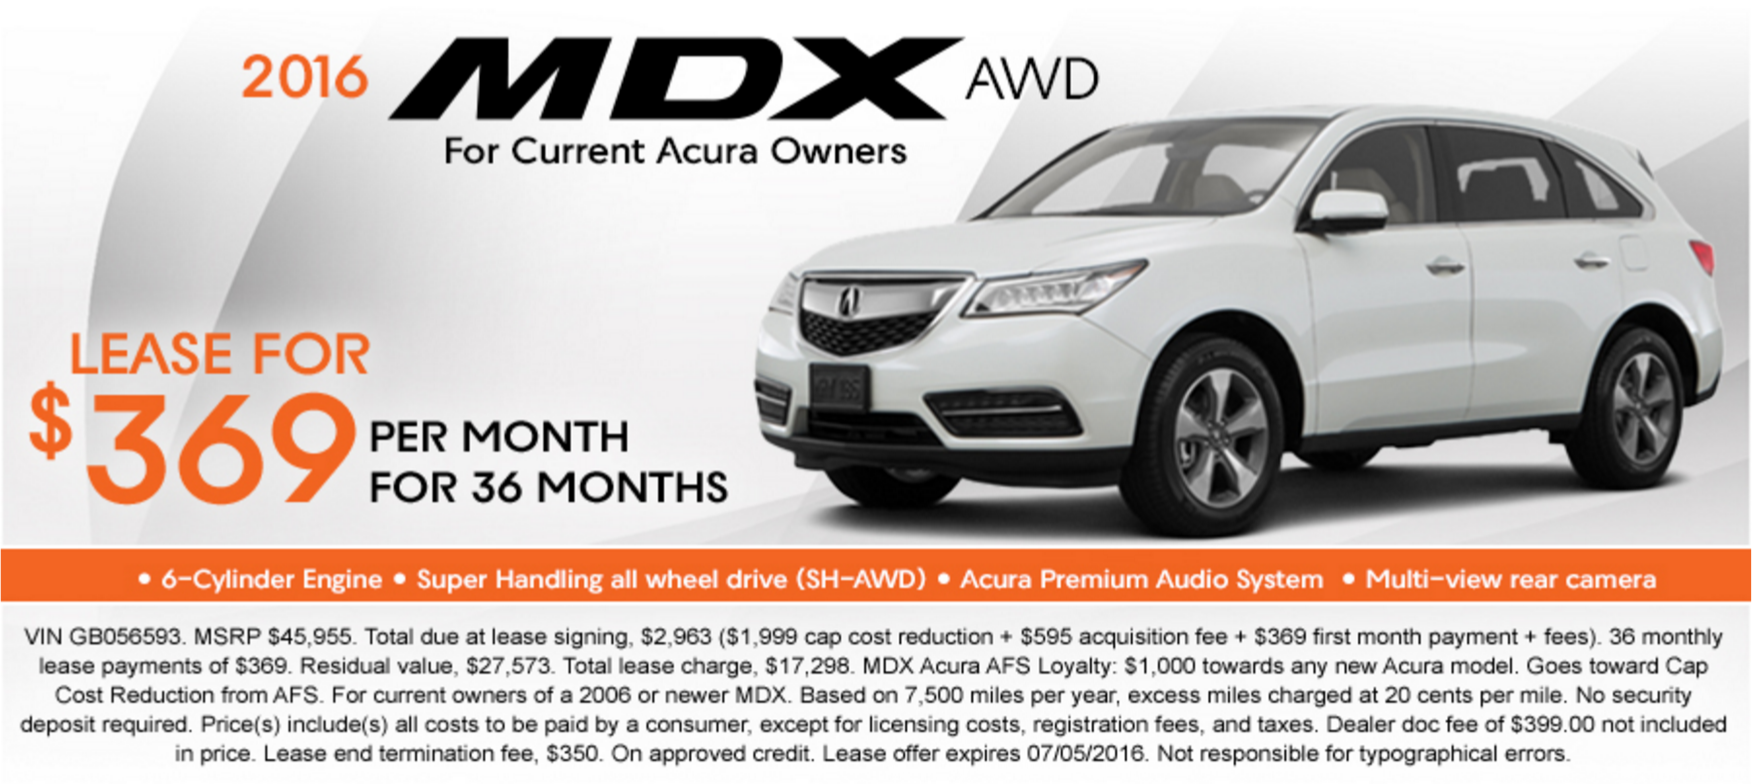 DCH Montclair Acura June News - Acura mdx lease specials